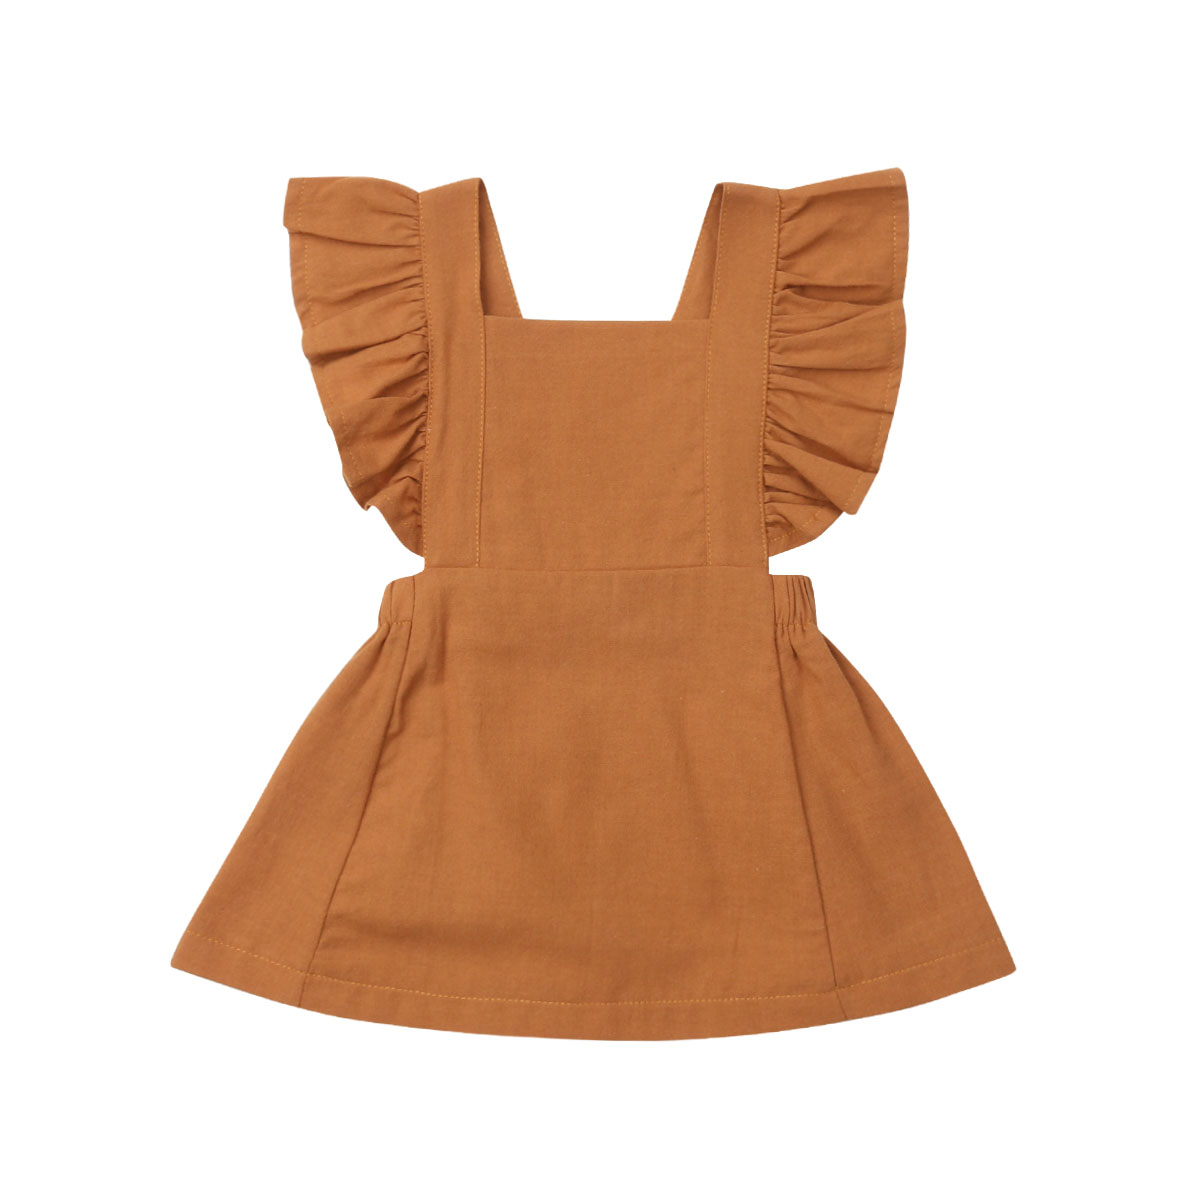 Pudcoco Newborn Kids Baby Girl Solid Color Dress Sleeveless Ruffle Party Dress Sundress 6 ColoursPudcoco Newborn Kids Baby Girl Solid Color Dress Sleeveless Ruffle Party Dress Sundress 6 Colours